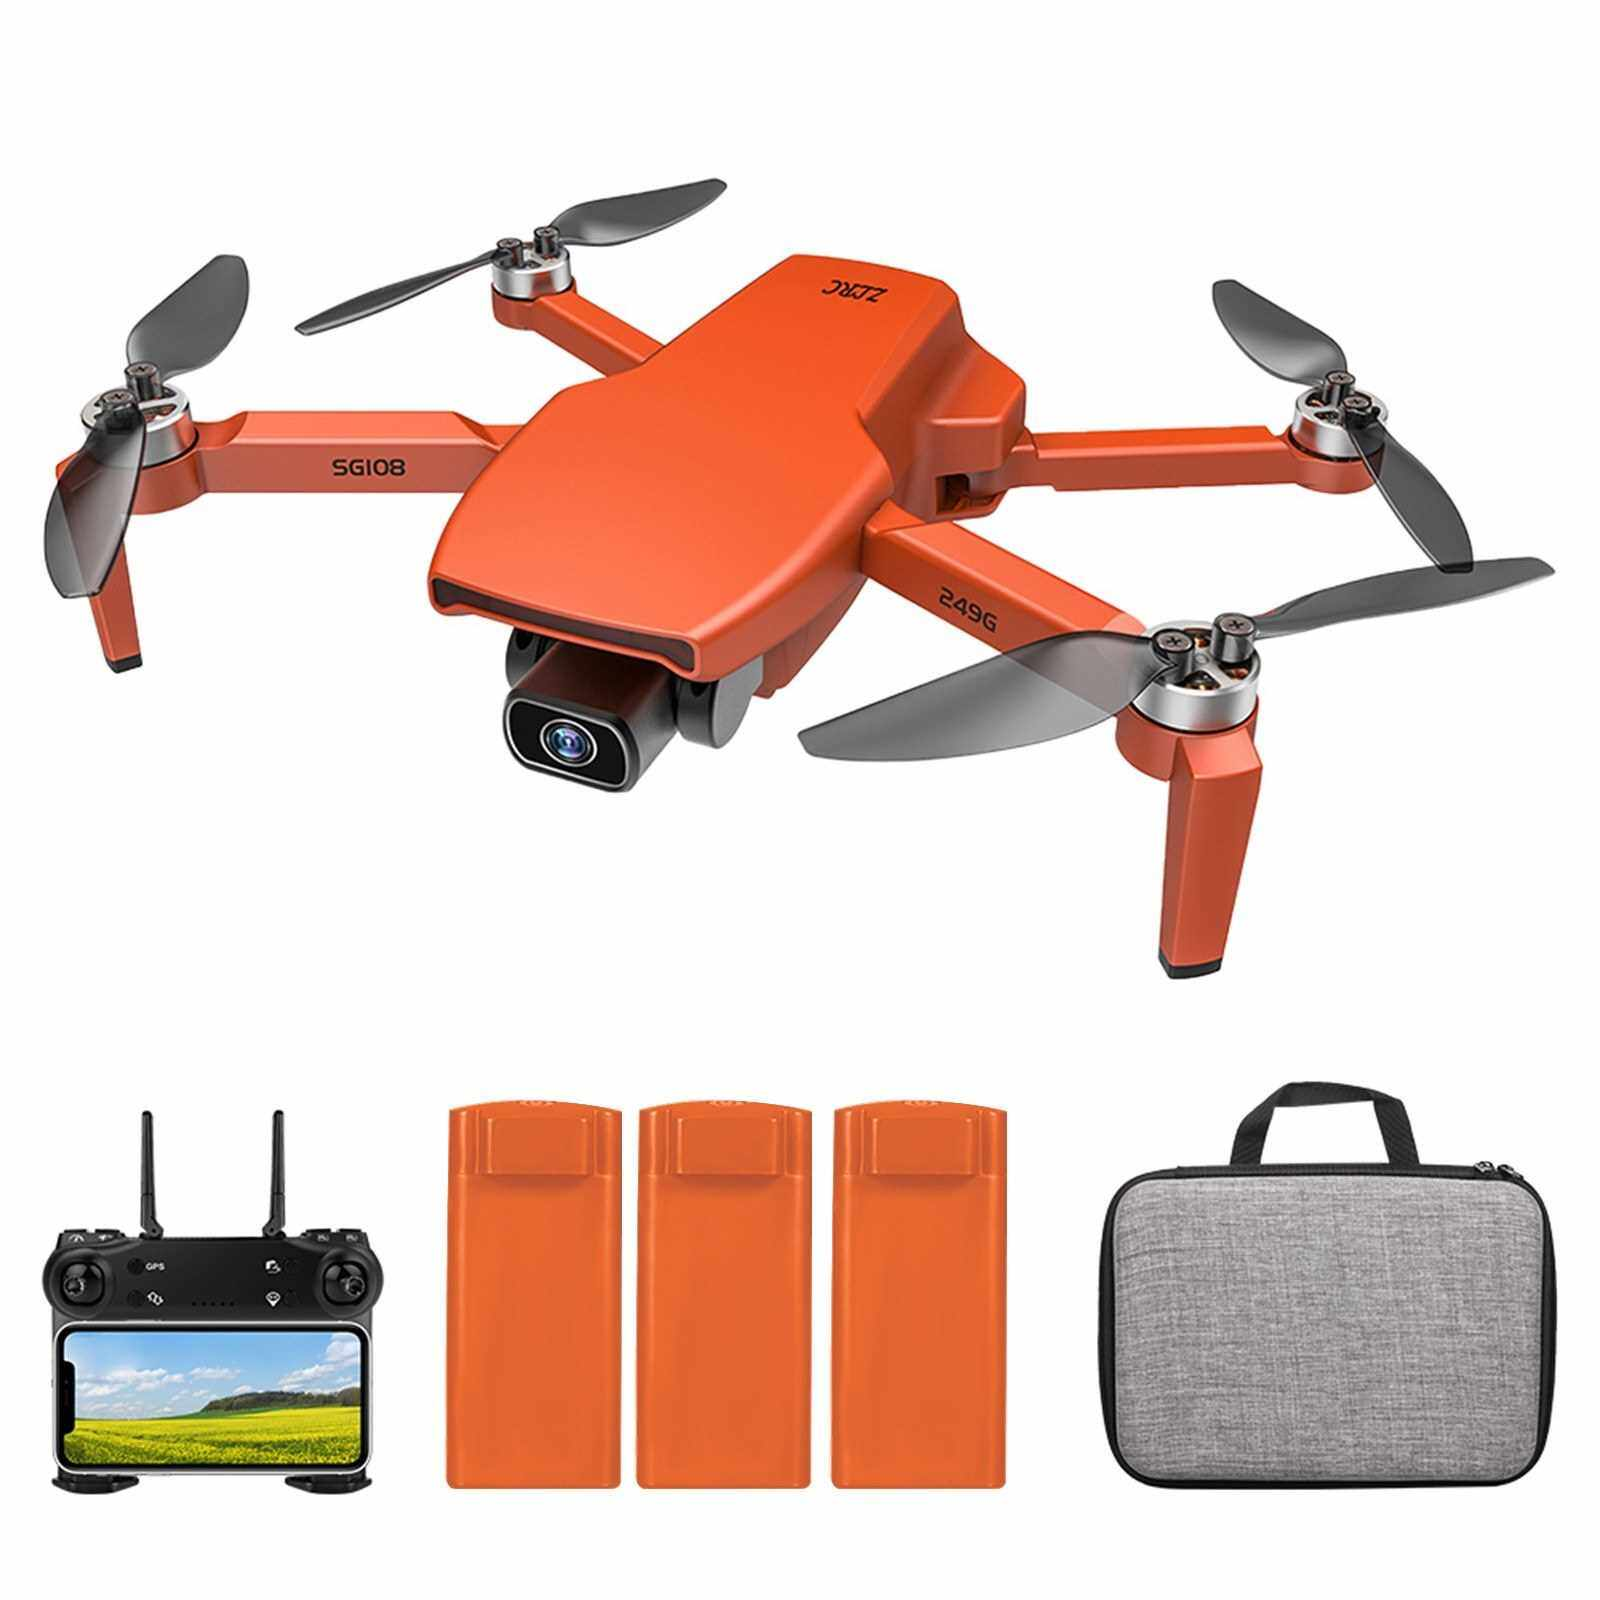 SG108 RC Drone with Camera 4K Camera Brushless Drone Dual Camera 5G WiFi FPV GPS Optical Flow Positioning Gesture Photo Video Point of Interest Flight Follow Me RC Qudcopter (Orange)